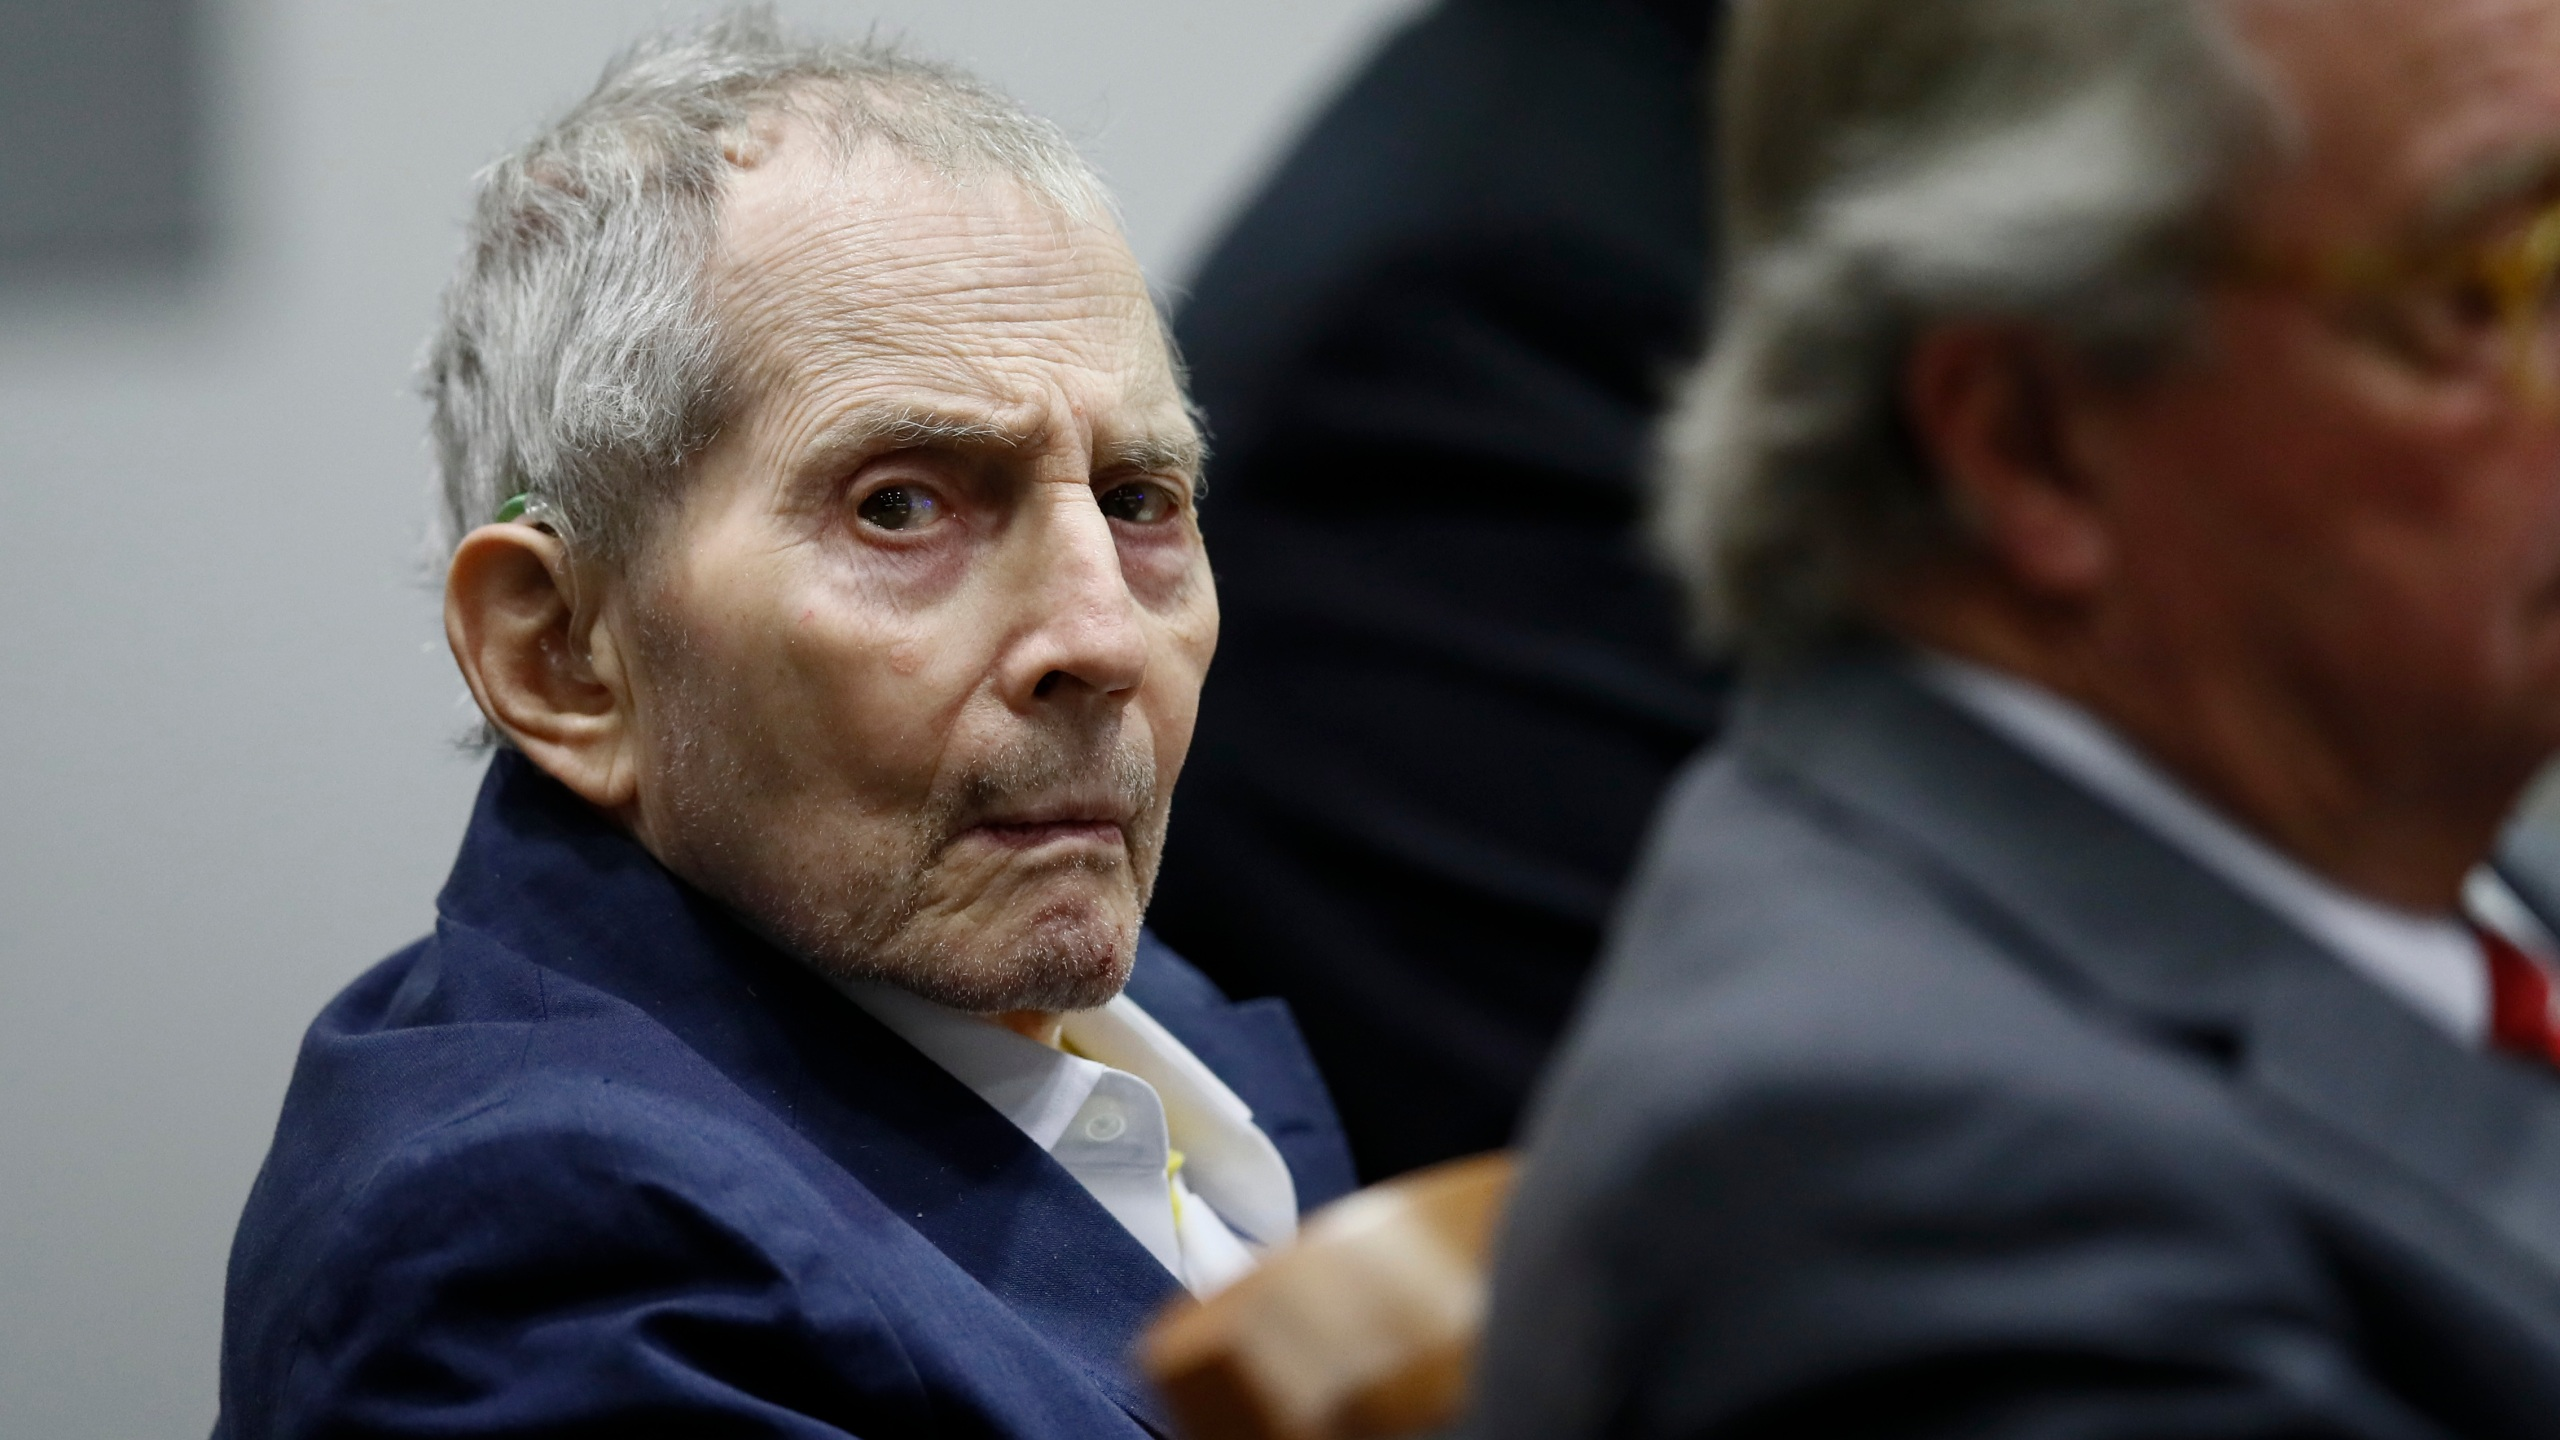 New York real estate scion Robert Durst appears in court during opening statements in his murder trial in Los Angeles on March 4, 2020. (Etienne Laurent / Getty Images)